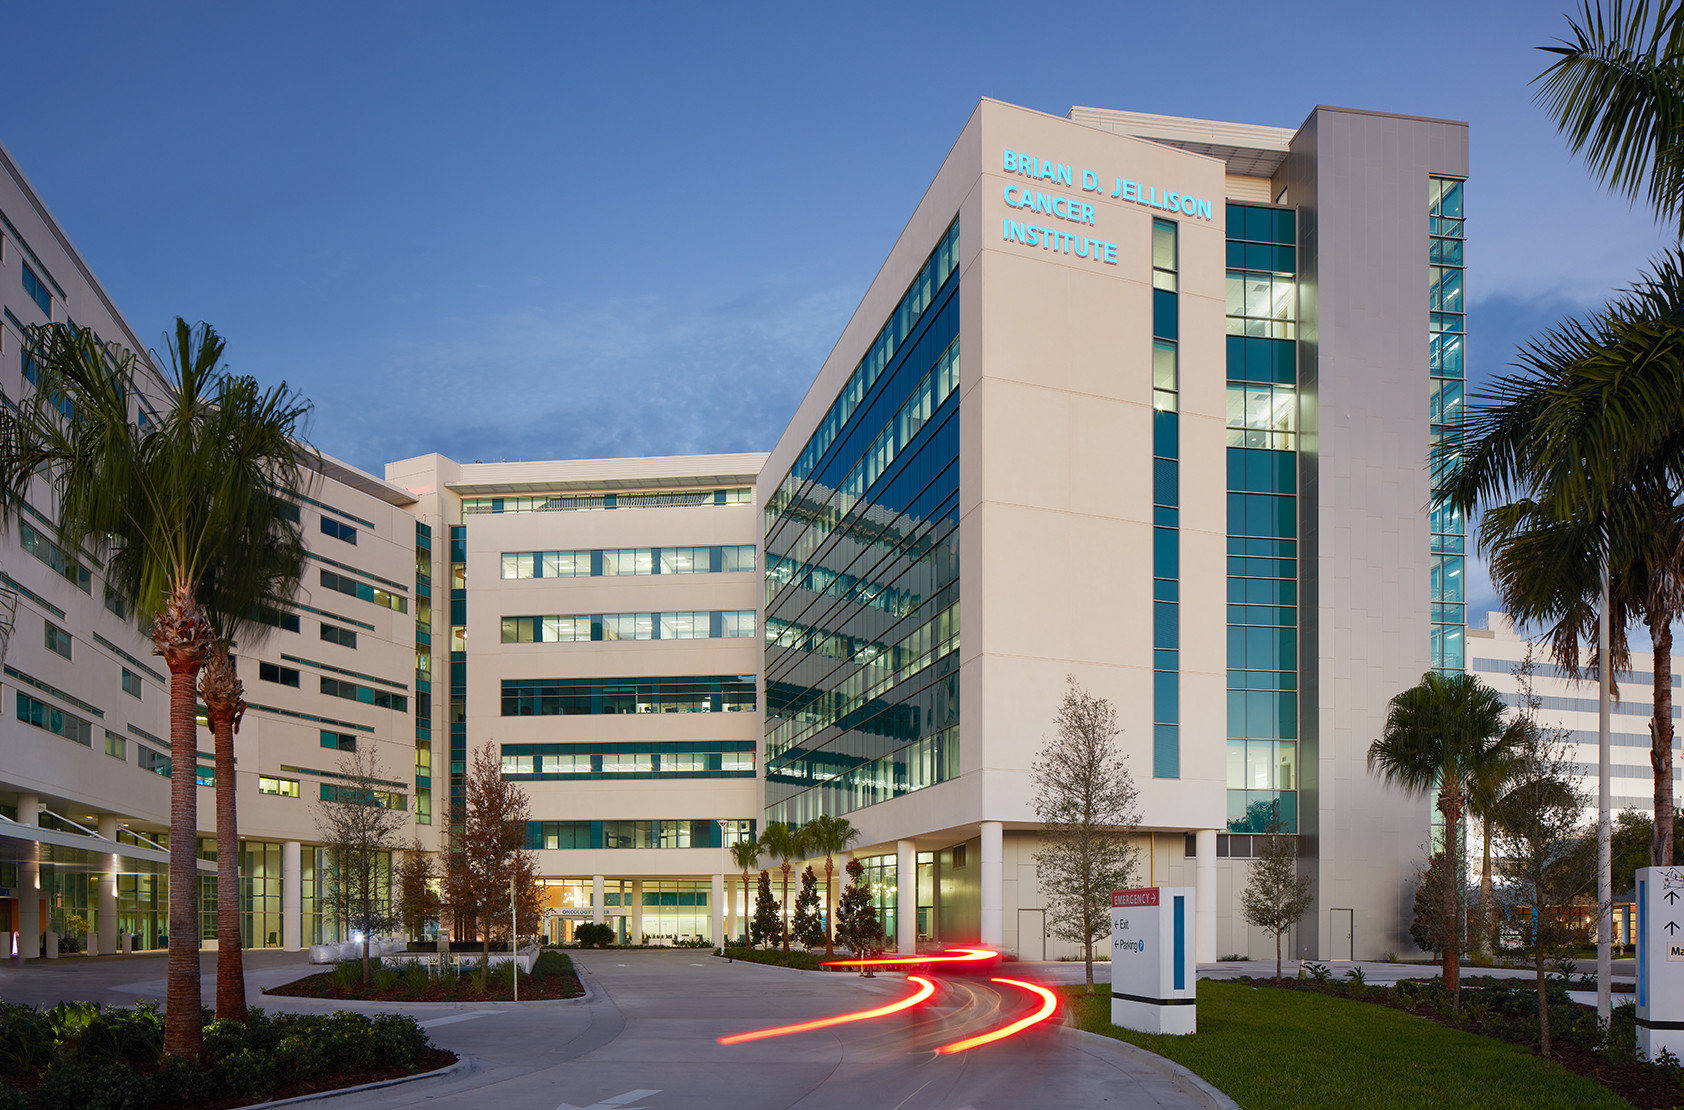 Sarasota Memorial Hospital - Oncology Inpatient and Surgical Tower